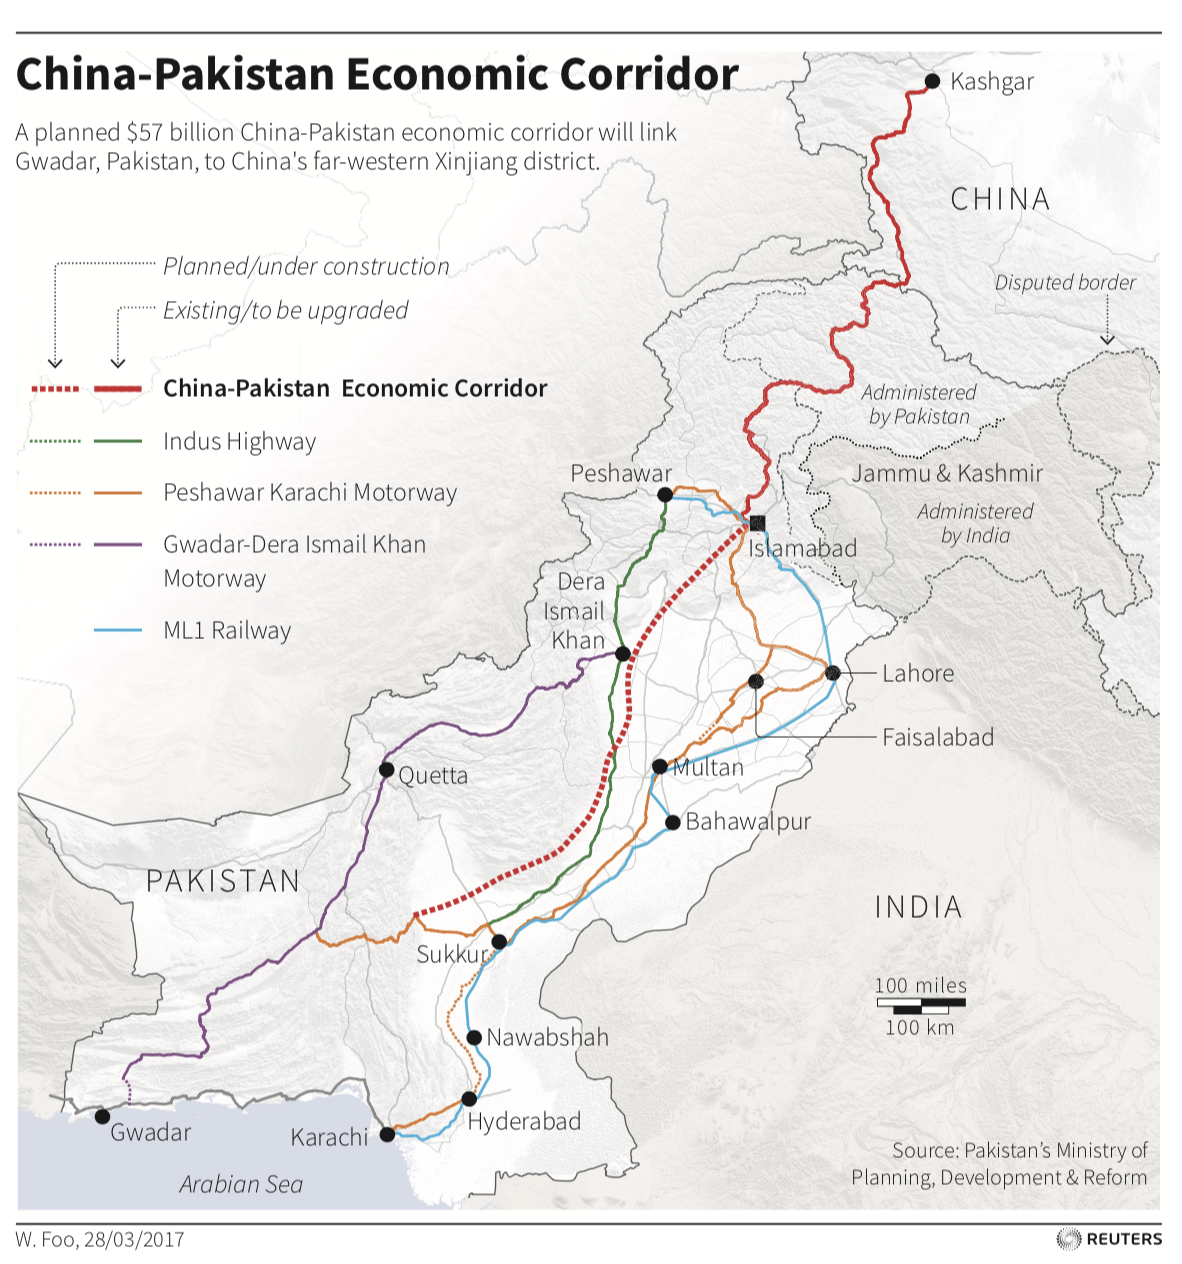 Opportunities and risks – the China-Pakistan trade corridor